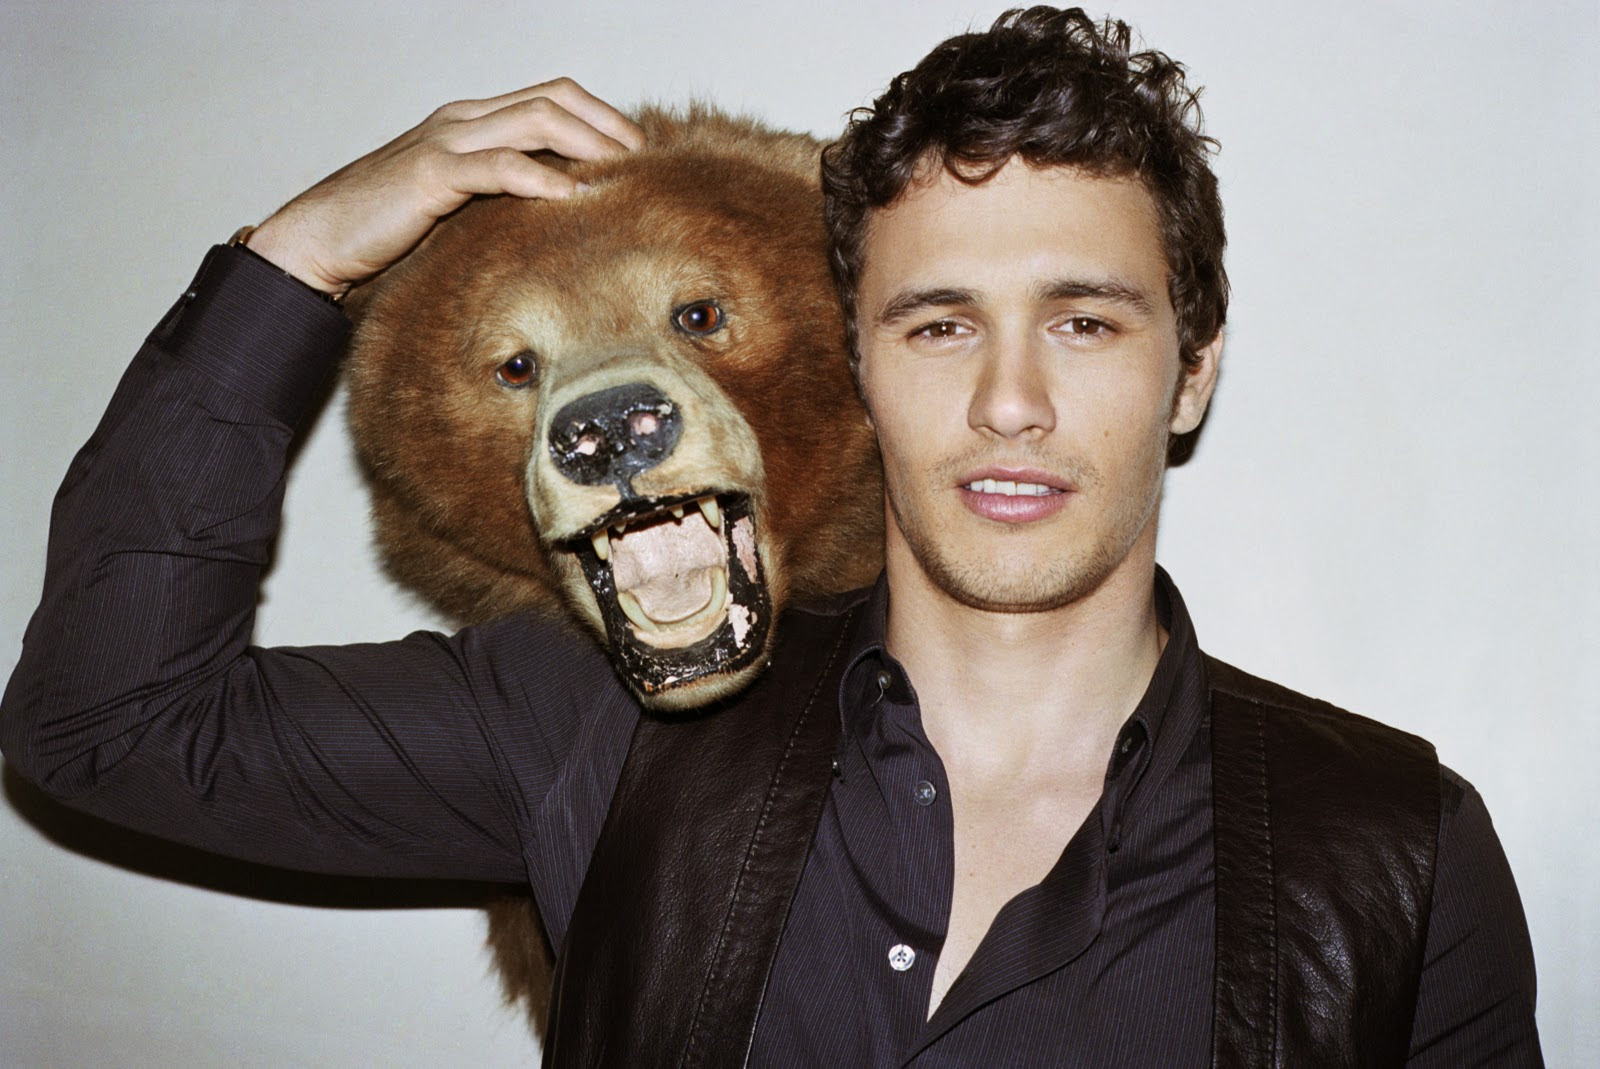 http://www.acclaimmag.com/wp-content/uploads/2013/05/James-Franco-casual.jpg